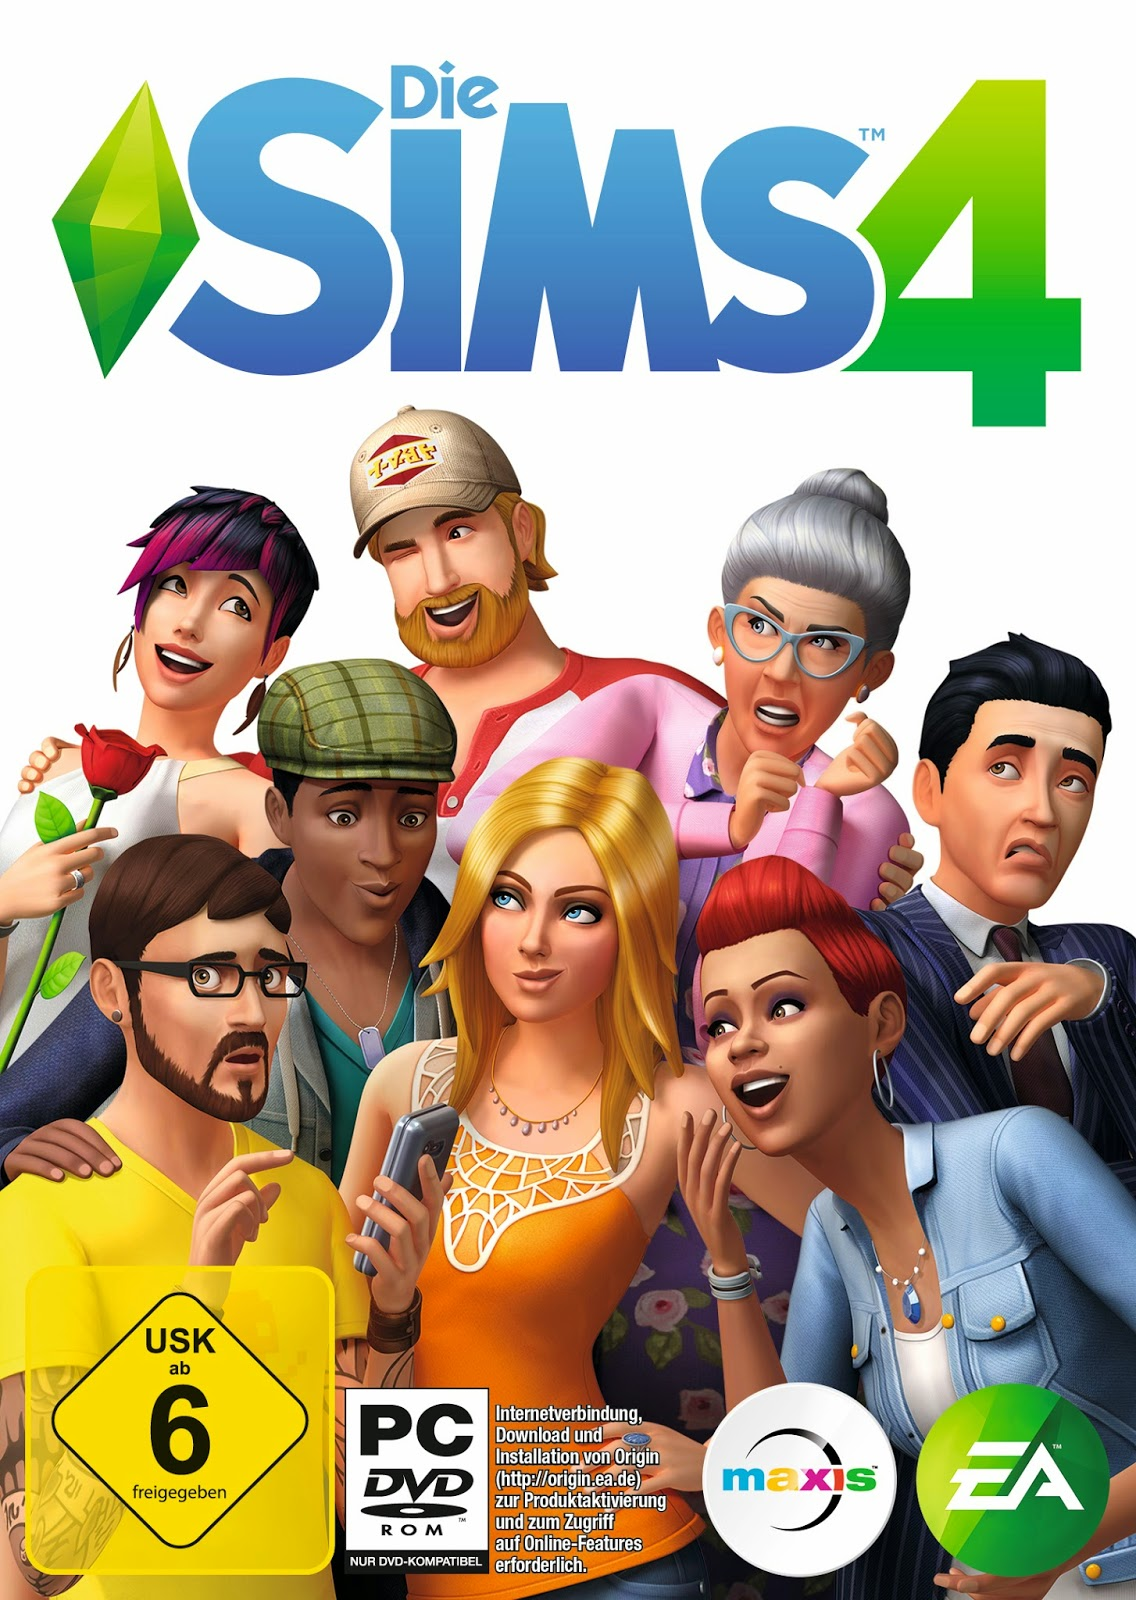 http://www.amazon.de/Die-Sims-Standard-Edition-PC/dp/B00KPY3KV2/ref=sr_1_3?ie=UTF8&qid=1410355782&sr=8-3&keywords=die+sims+4